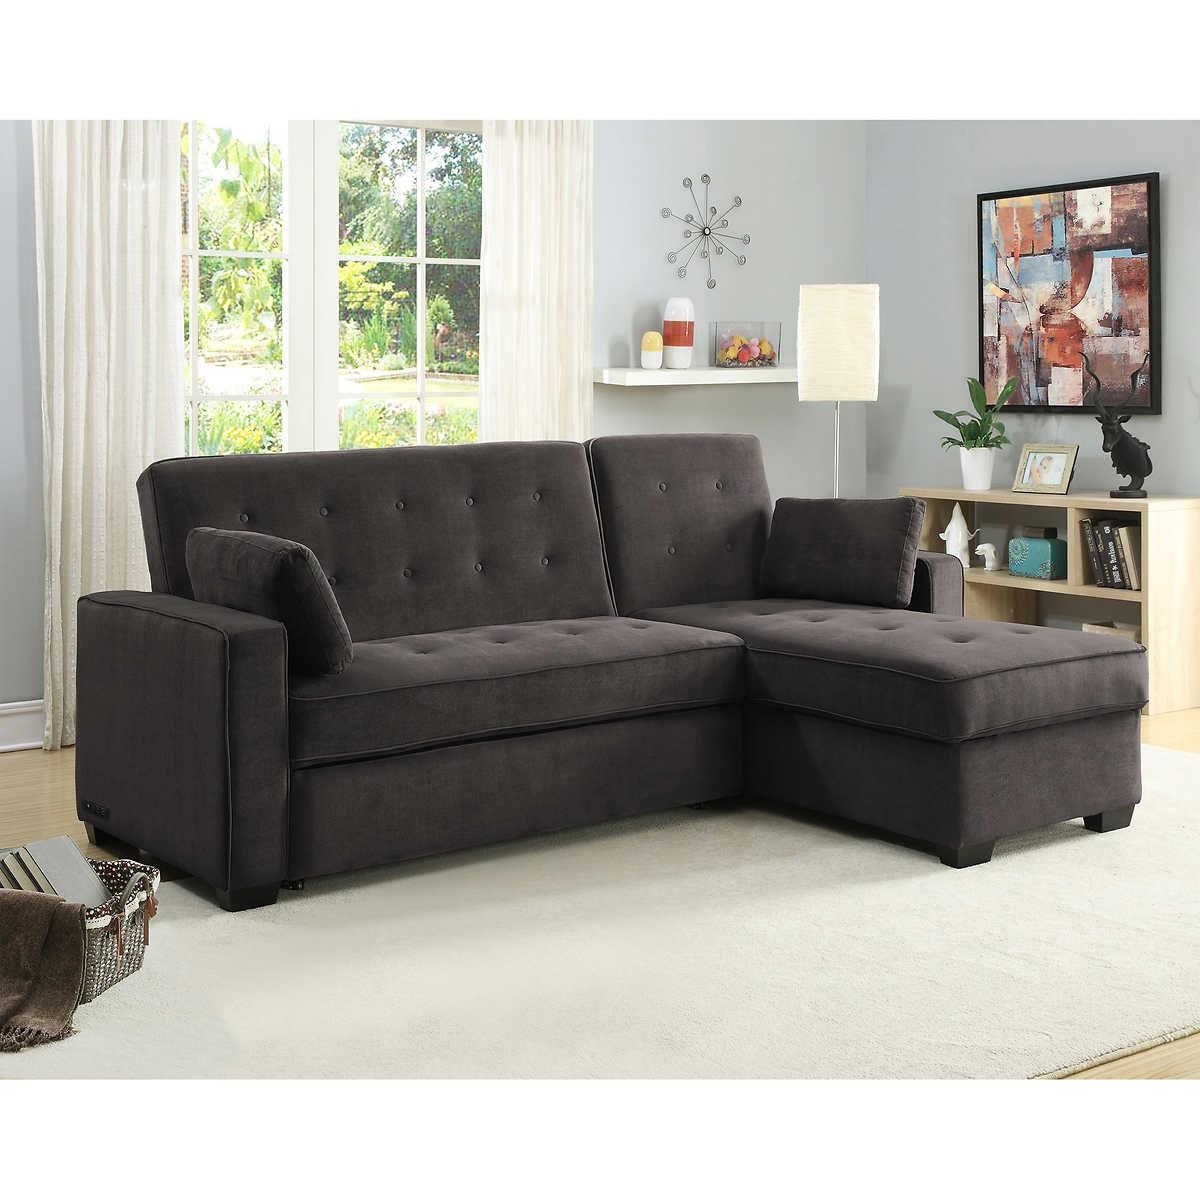 Sofas Center : Berkline Reclining Sofa Costco Cosco Sofas Power For Berkline Recliner Sofas (View 13 of 20)